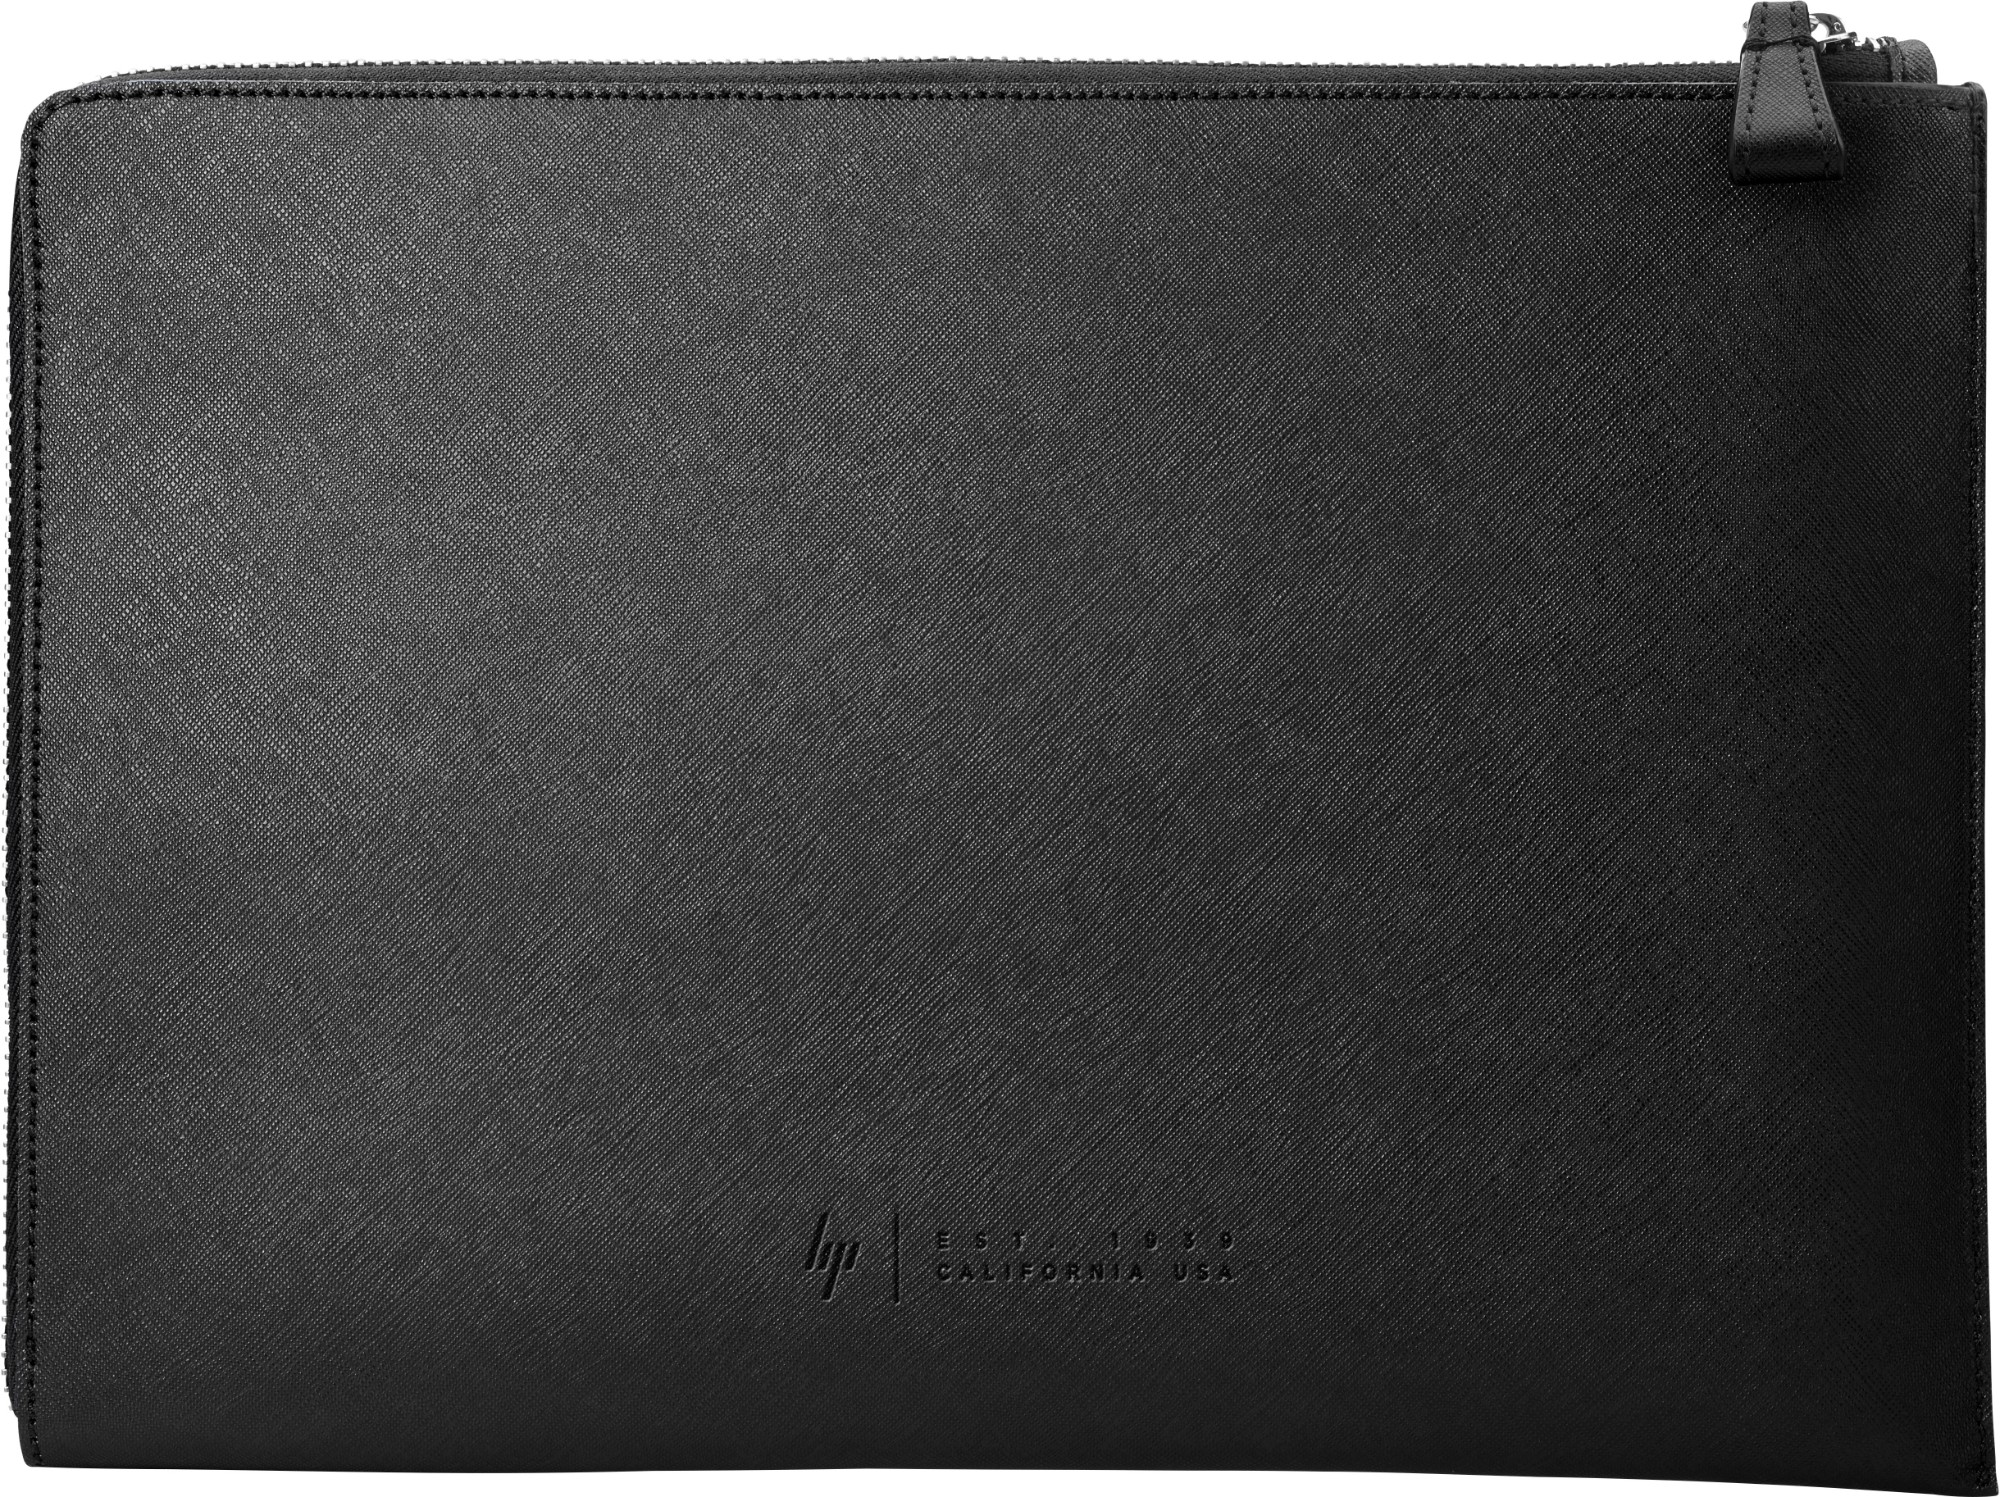 HP Elite 13.3 Black Leather Sleeve notebook case 33.8 cm (13.3